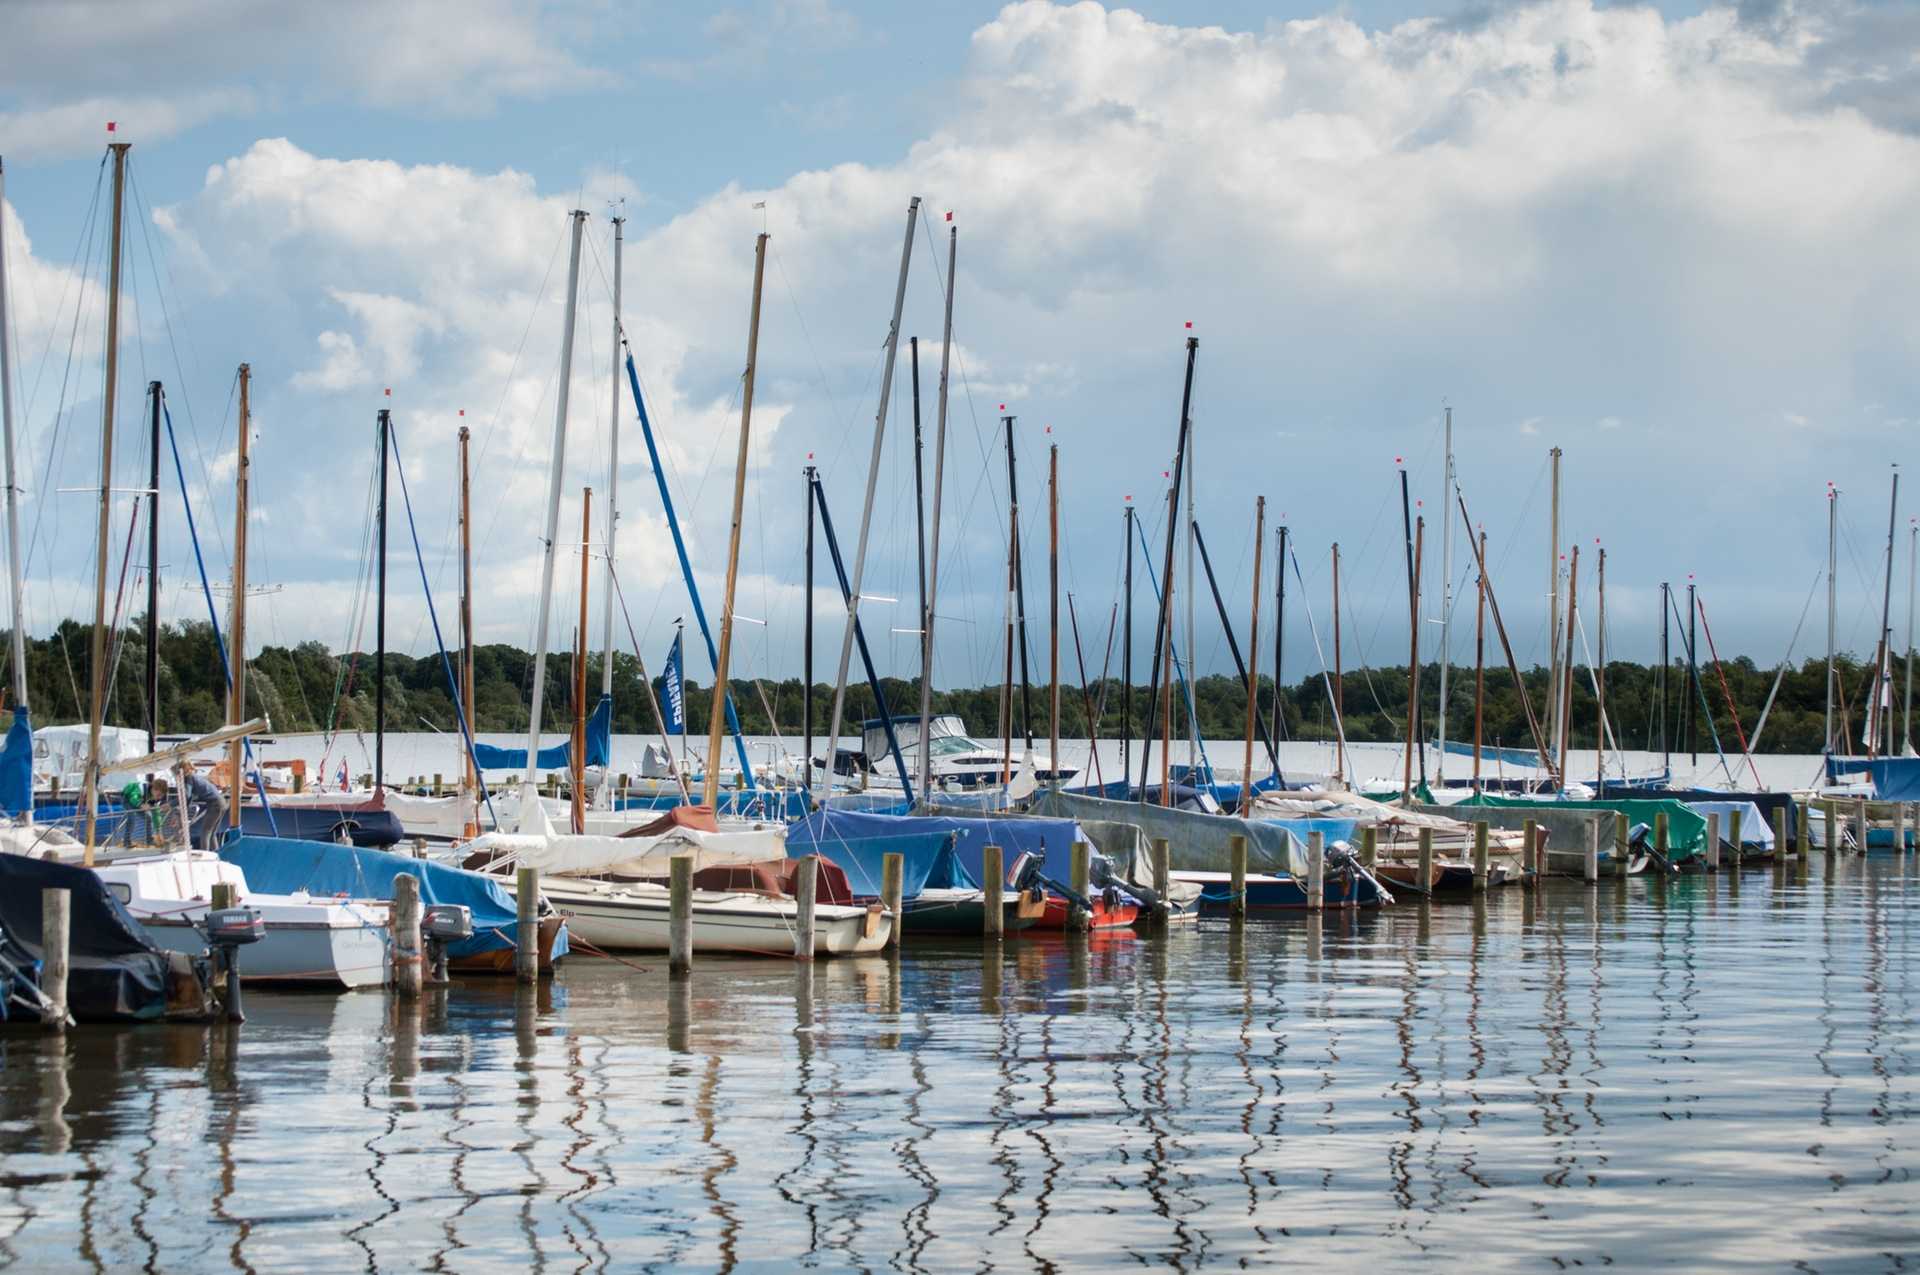 boats-sailboats-harbor-harbour-1